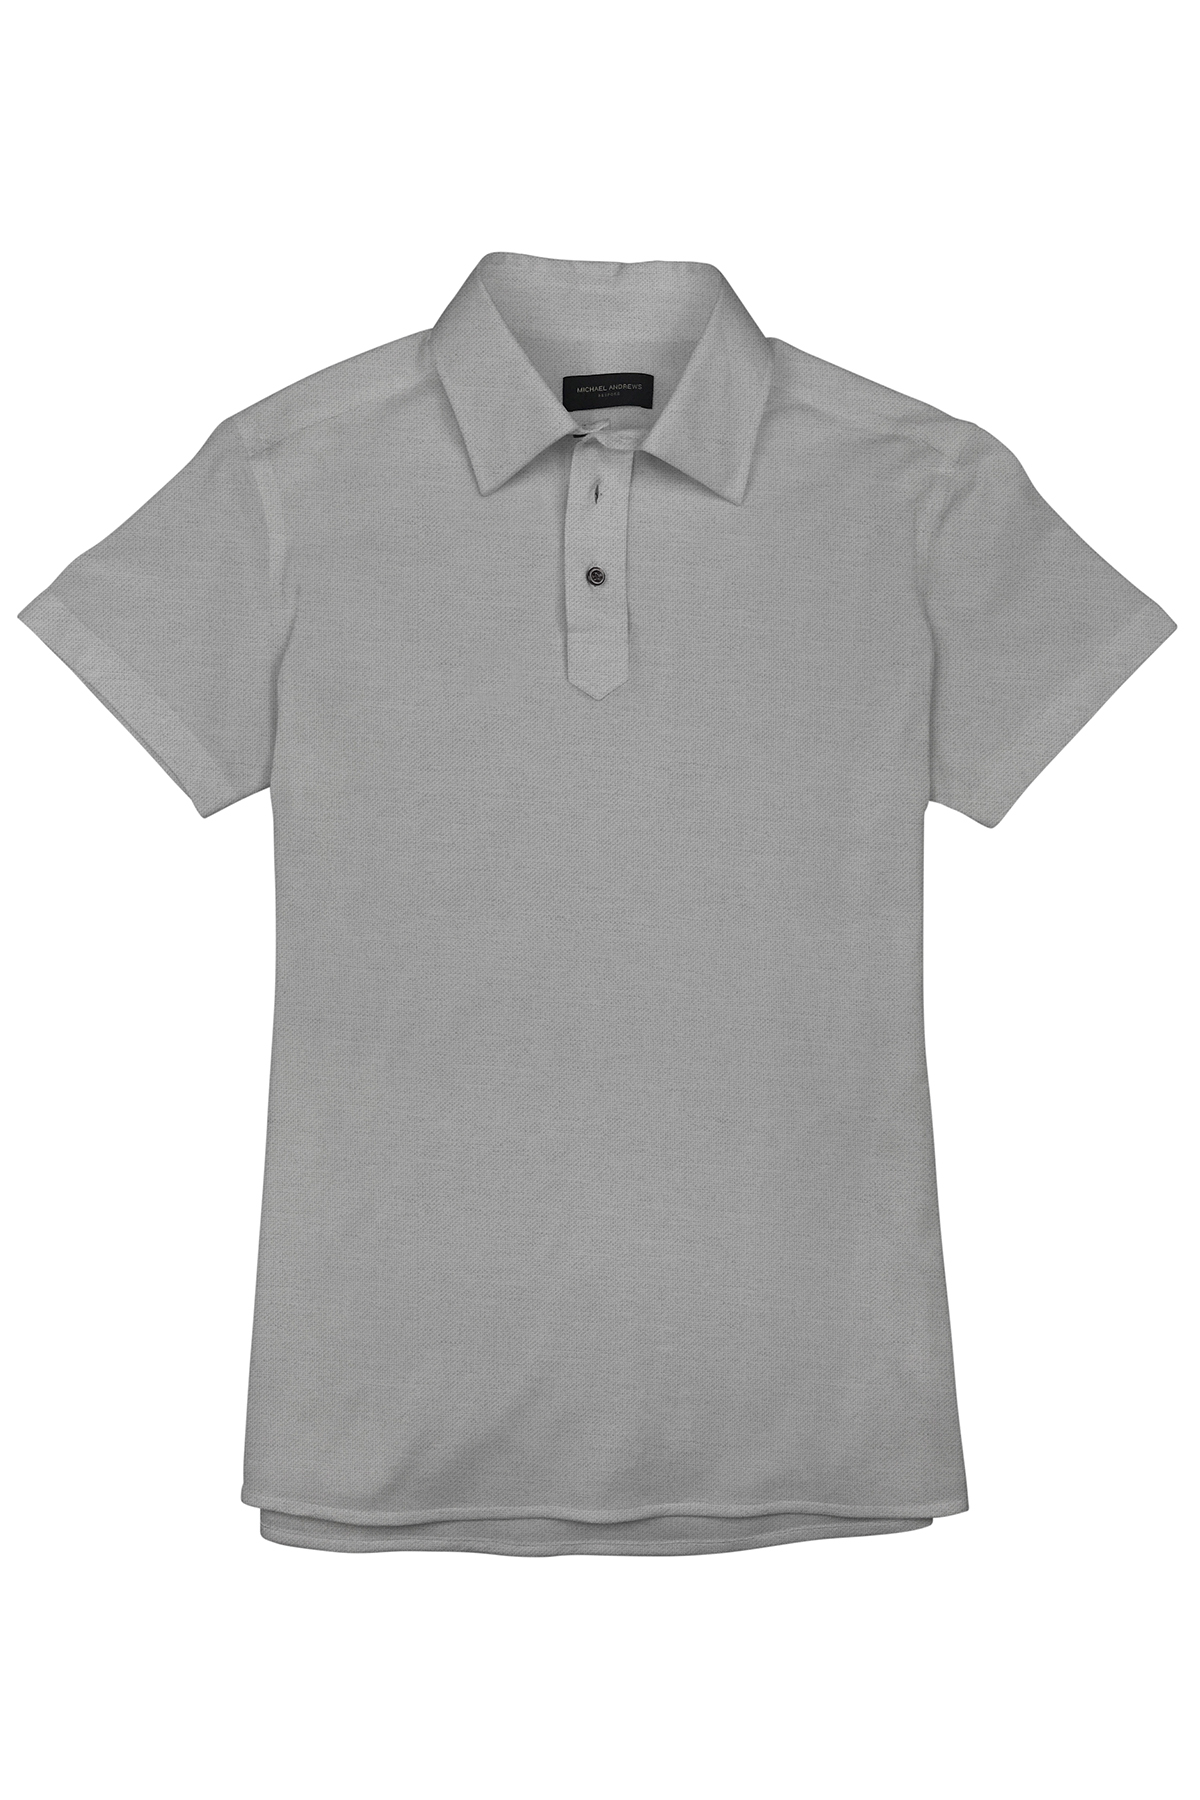 Taupe Grey Pique Short Sleeve Polo Shirt